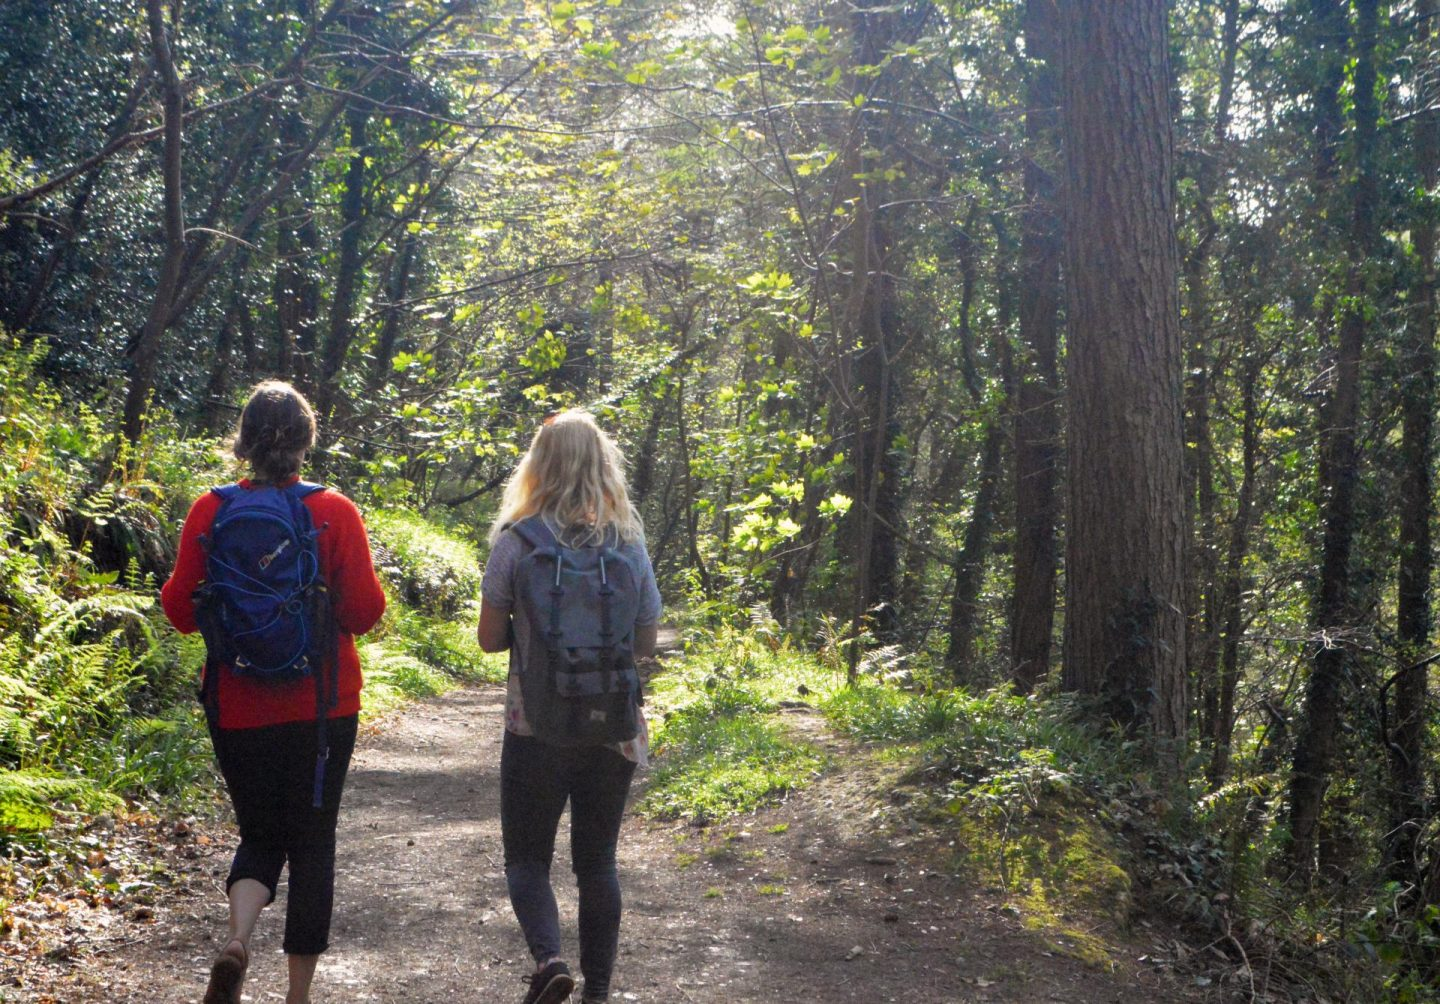 The joy of local adventures / Go local - how adventures close to home can make us happy